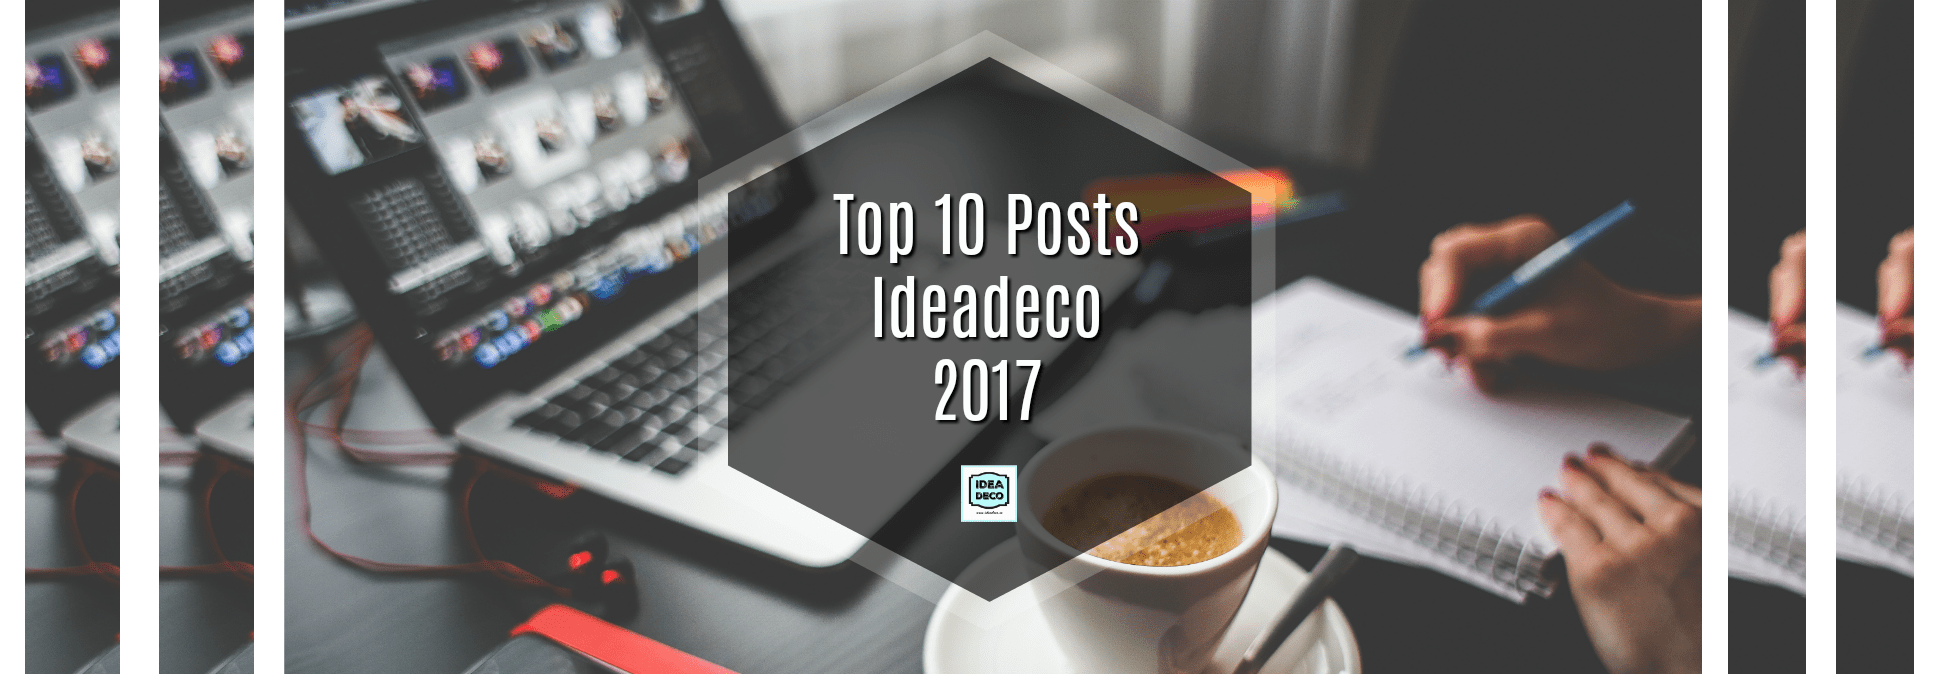 Top 10 Ideadeco Posts